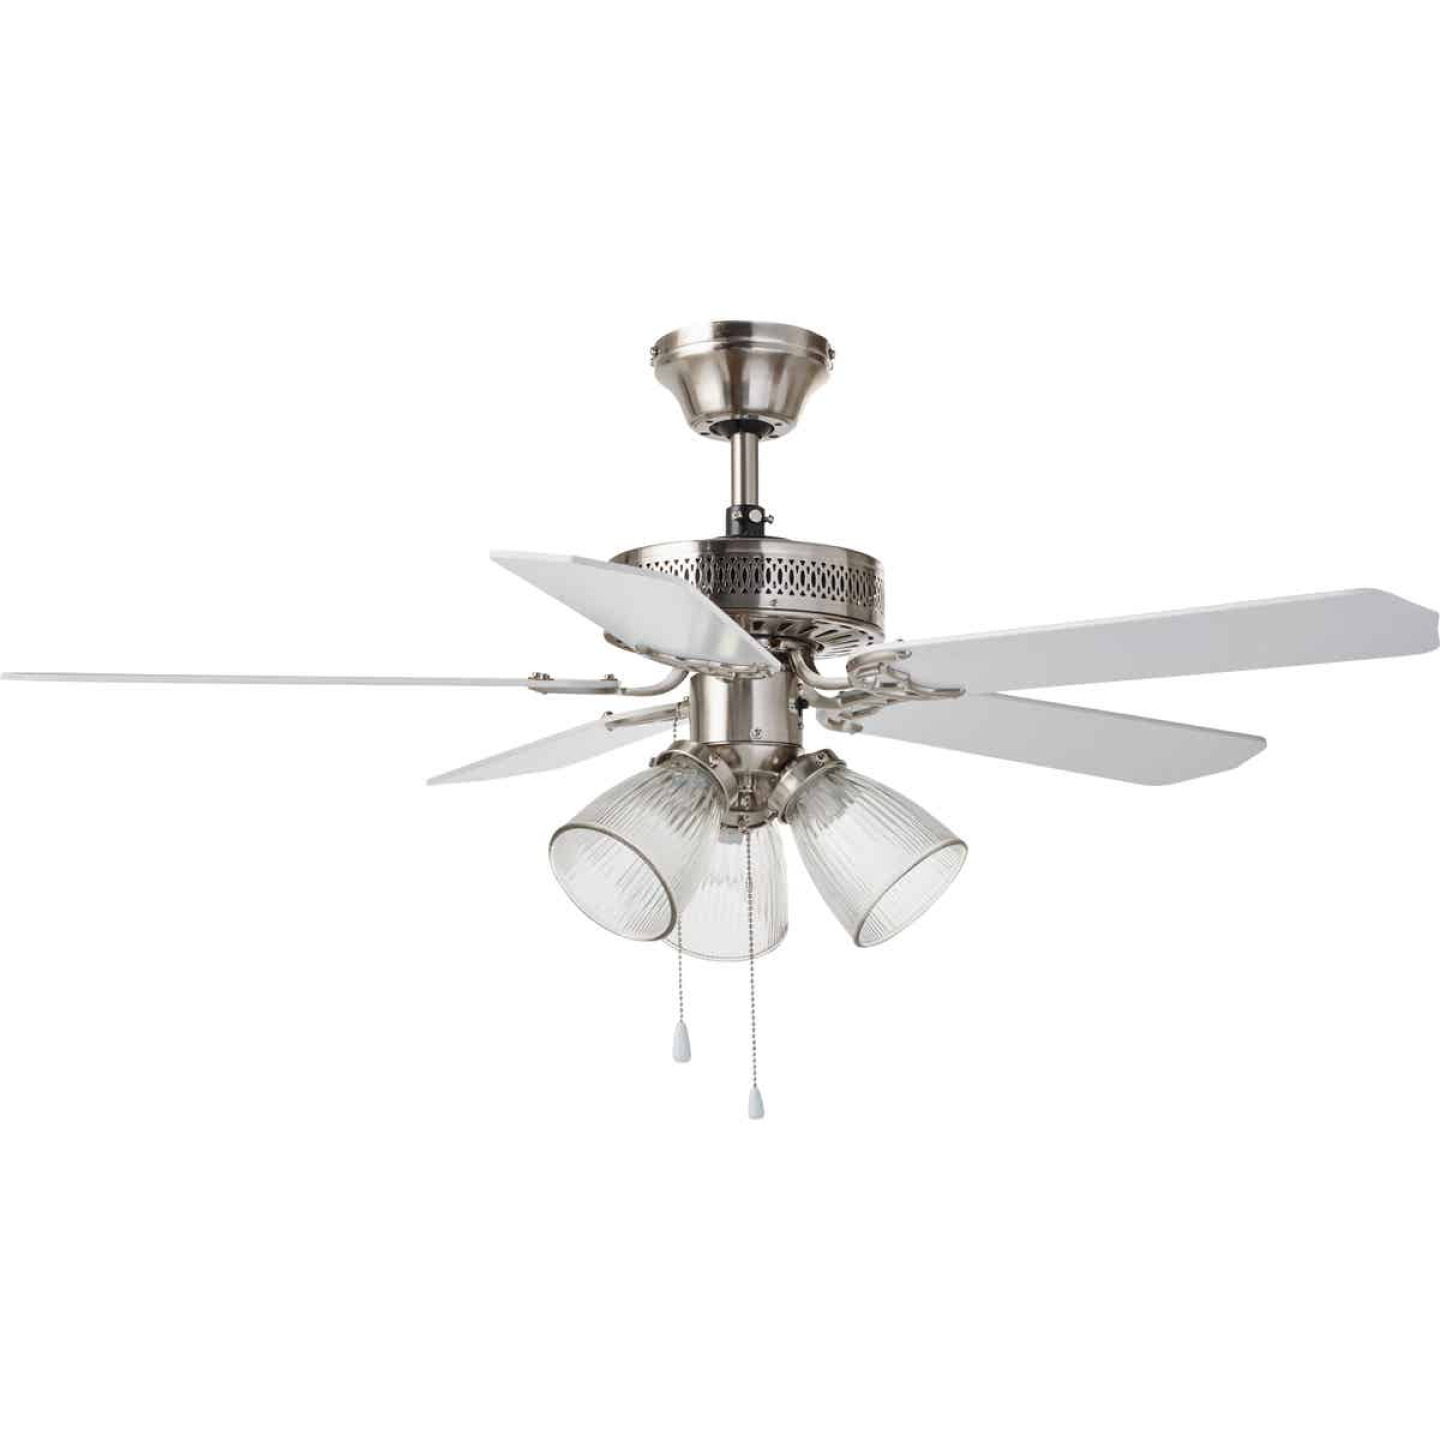 Home Impressions Tradition 42 In. Brushed Nickel Ceiling Fan with Light Kit Image 2